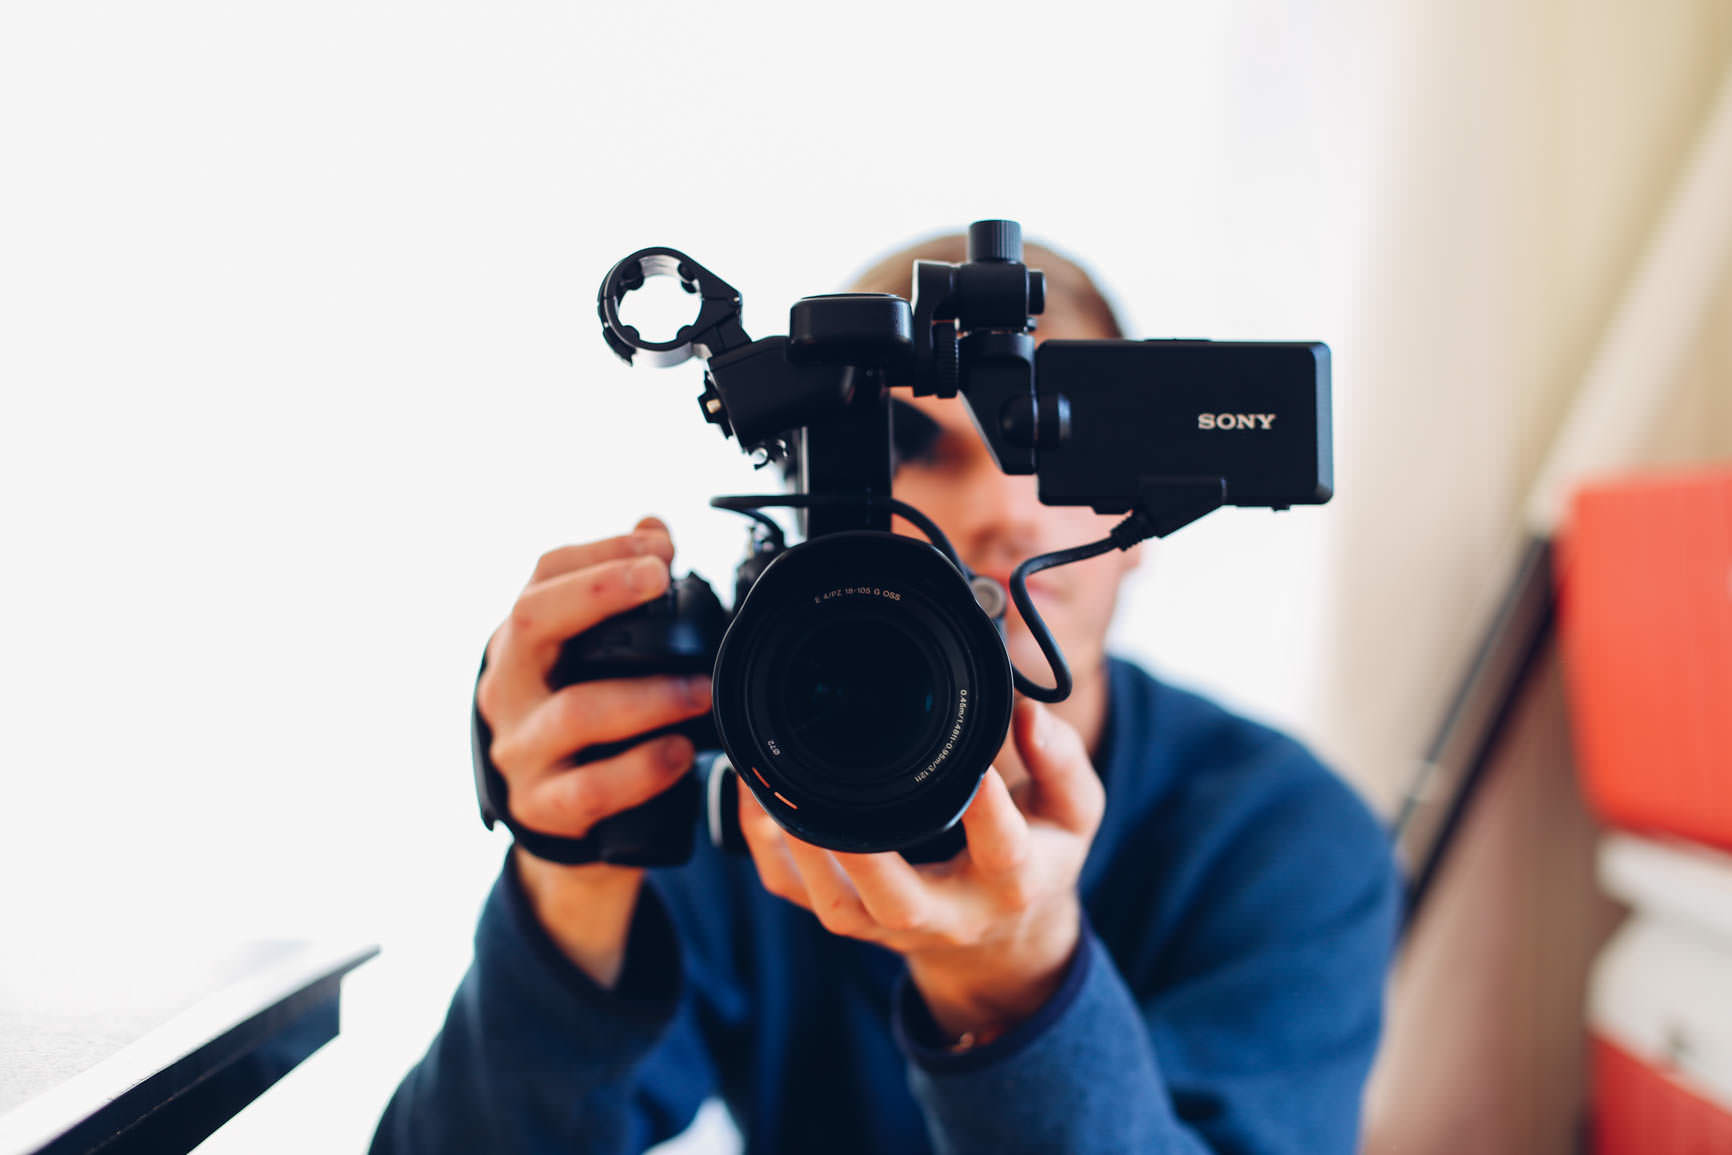 Photographer who wants to learn videography